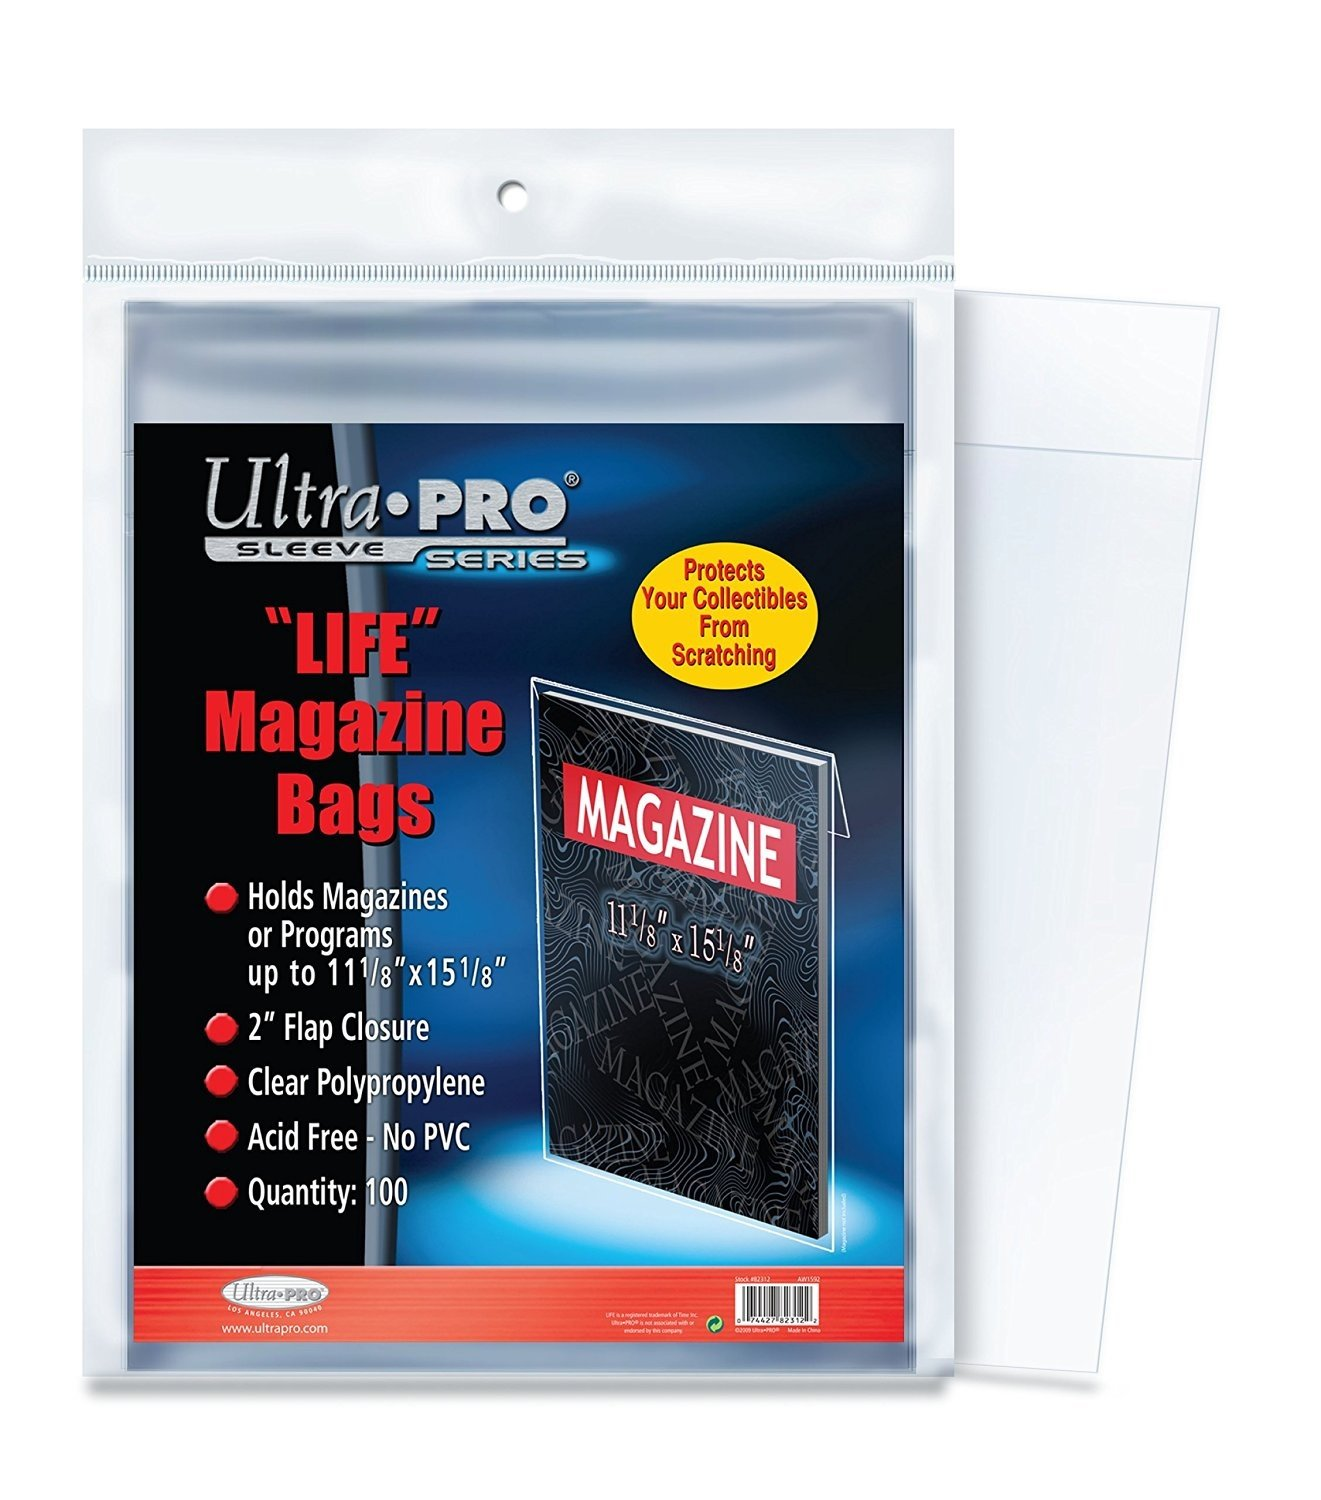 (1000) Ultra PRO Life Magazine 11-1/8 x 15-1/8'' Bags (10x 100 Count Pack), Small, Clear